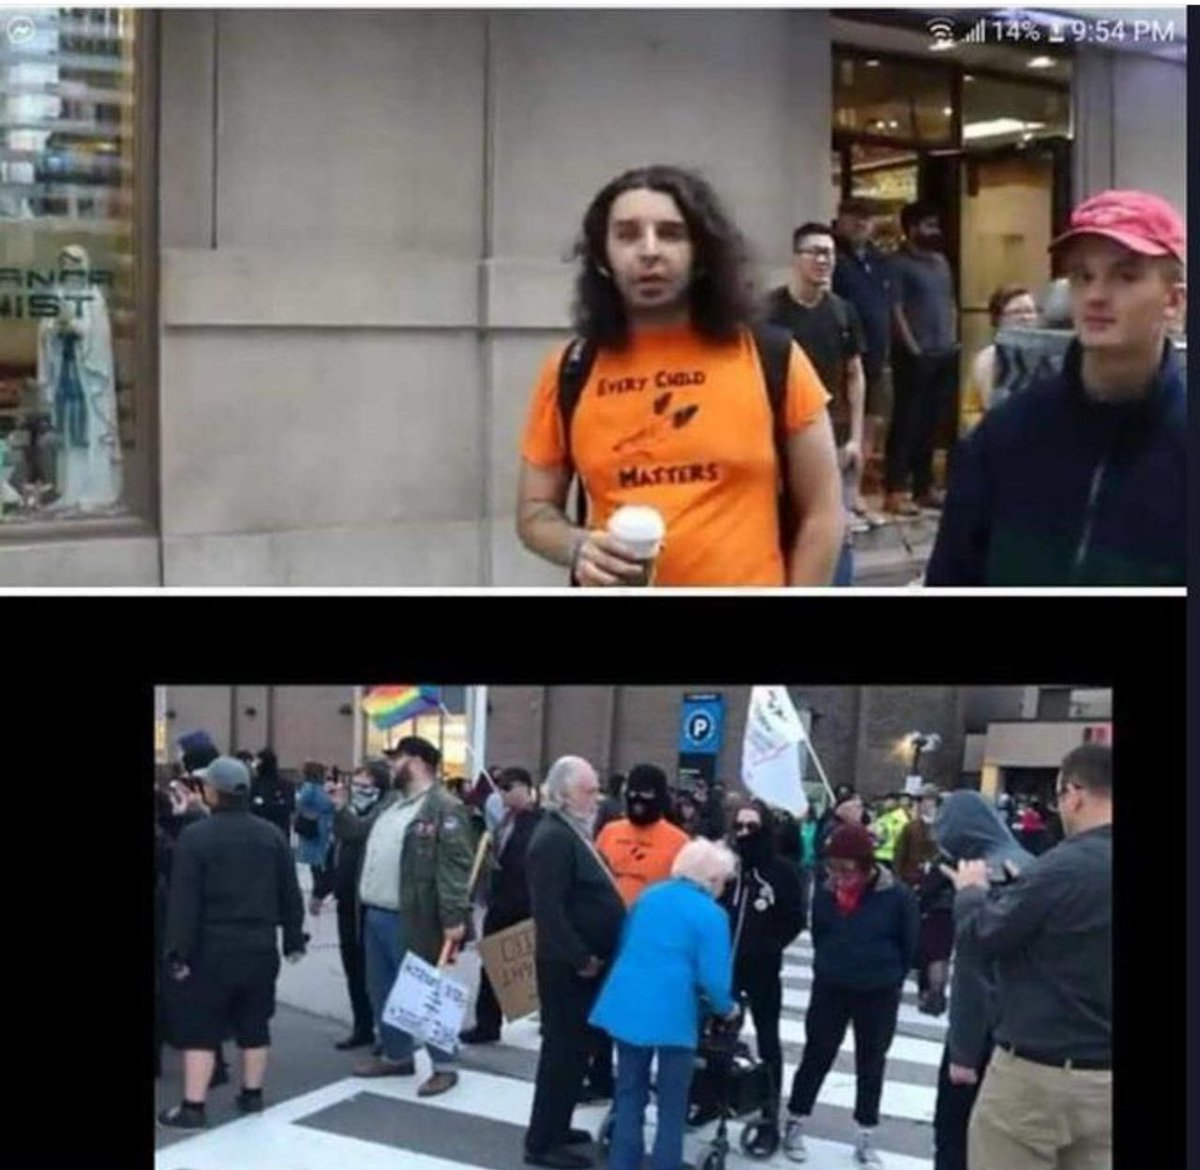 #Antifa member in Ontario who harassed elderly couple shown here without his mask! I wasnt there but Im guessing you can smell him from 500 metres out!